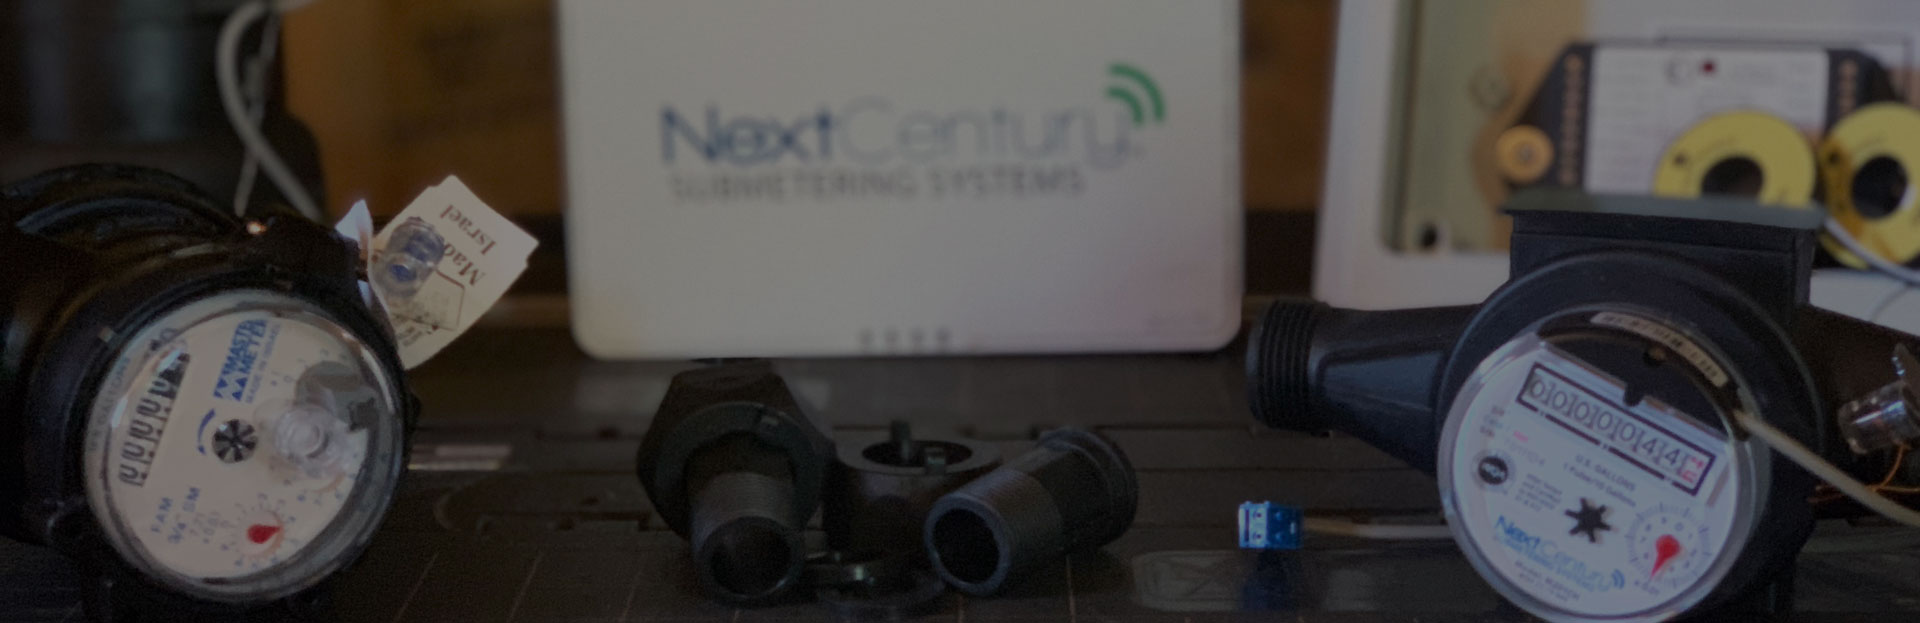 NextCentury-Submetering-equipment